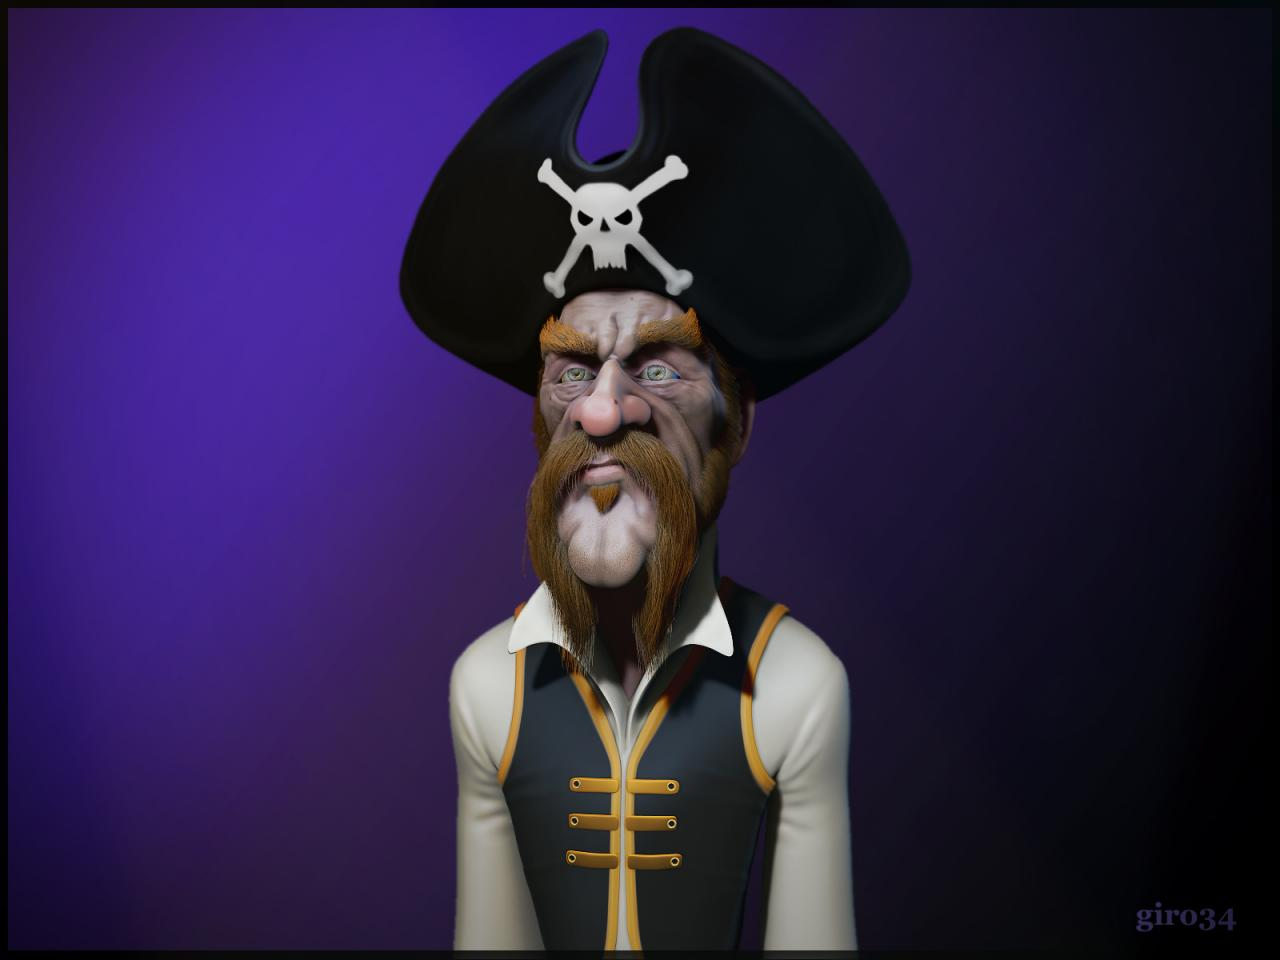 Caricature pirate